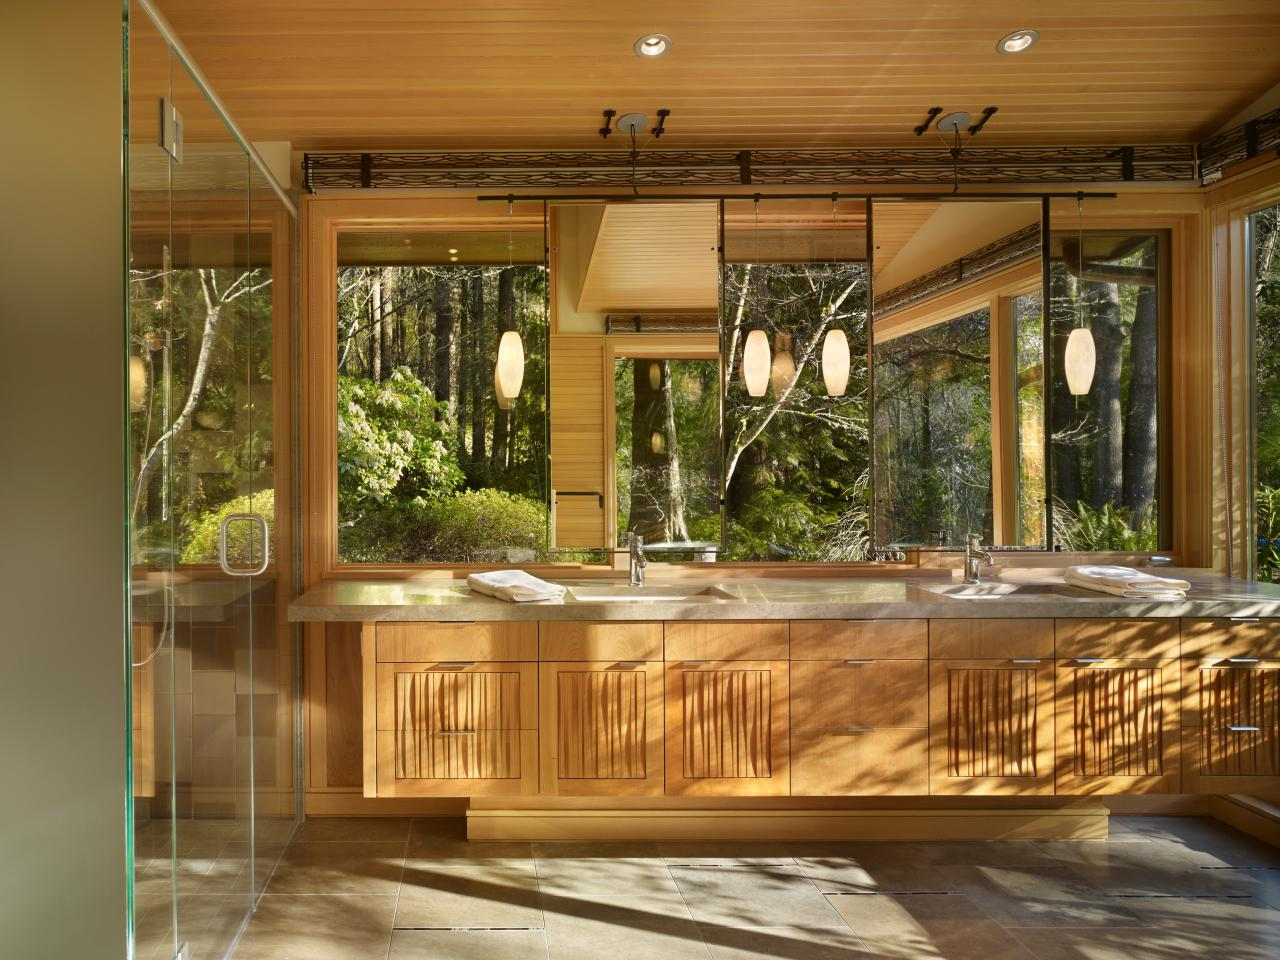 Contemporary double vanity bathroom with forest view this serene bathroom features a large - Tropical outdoor kitchen designs ...